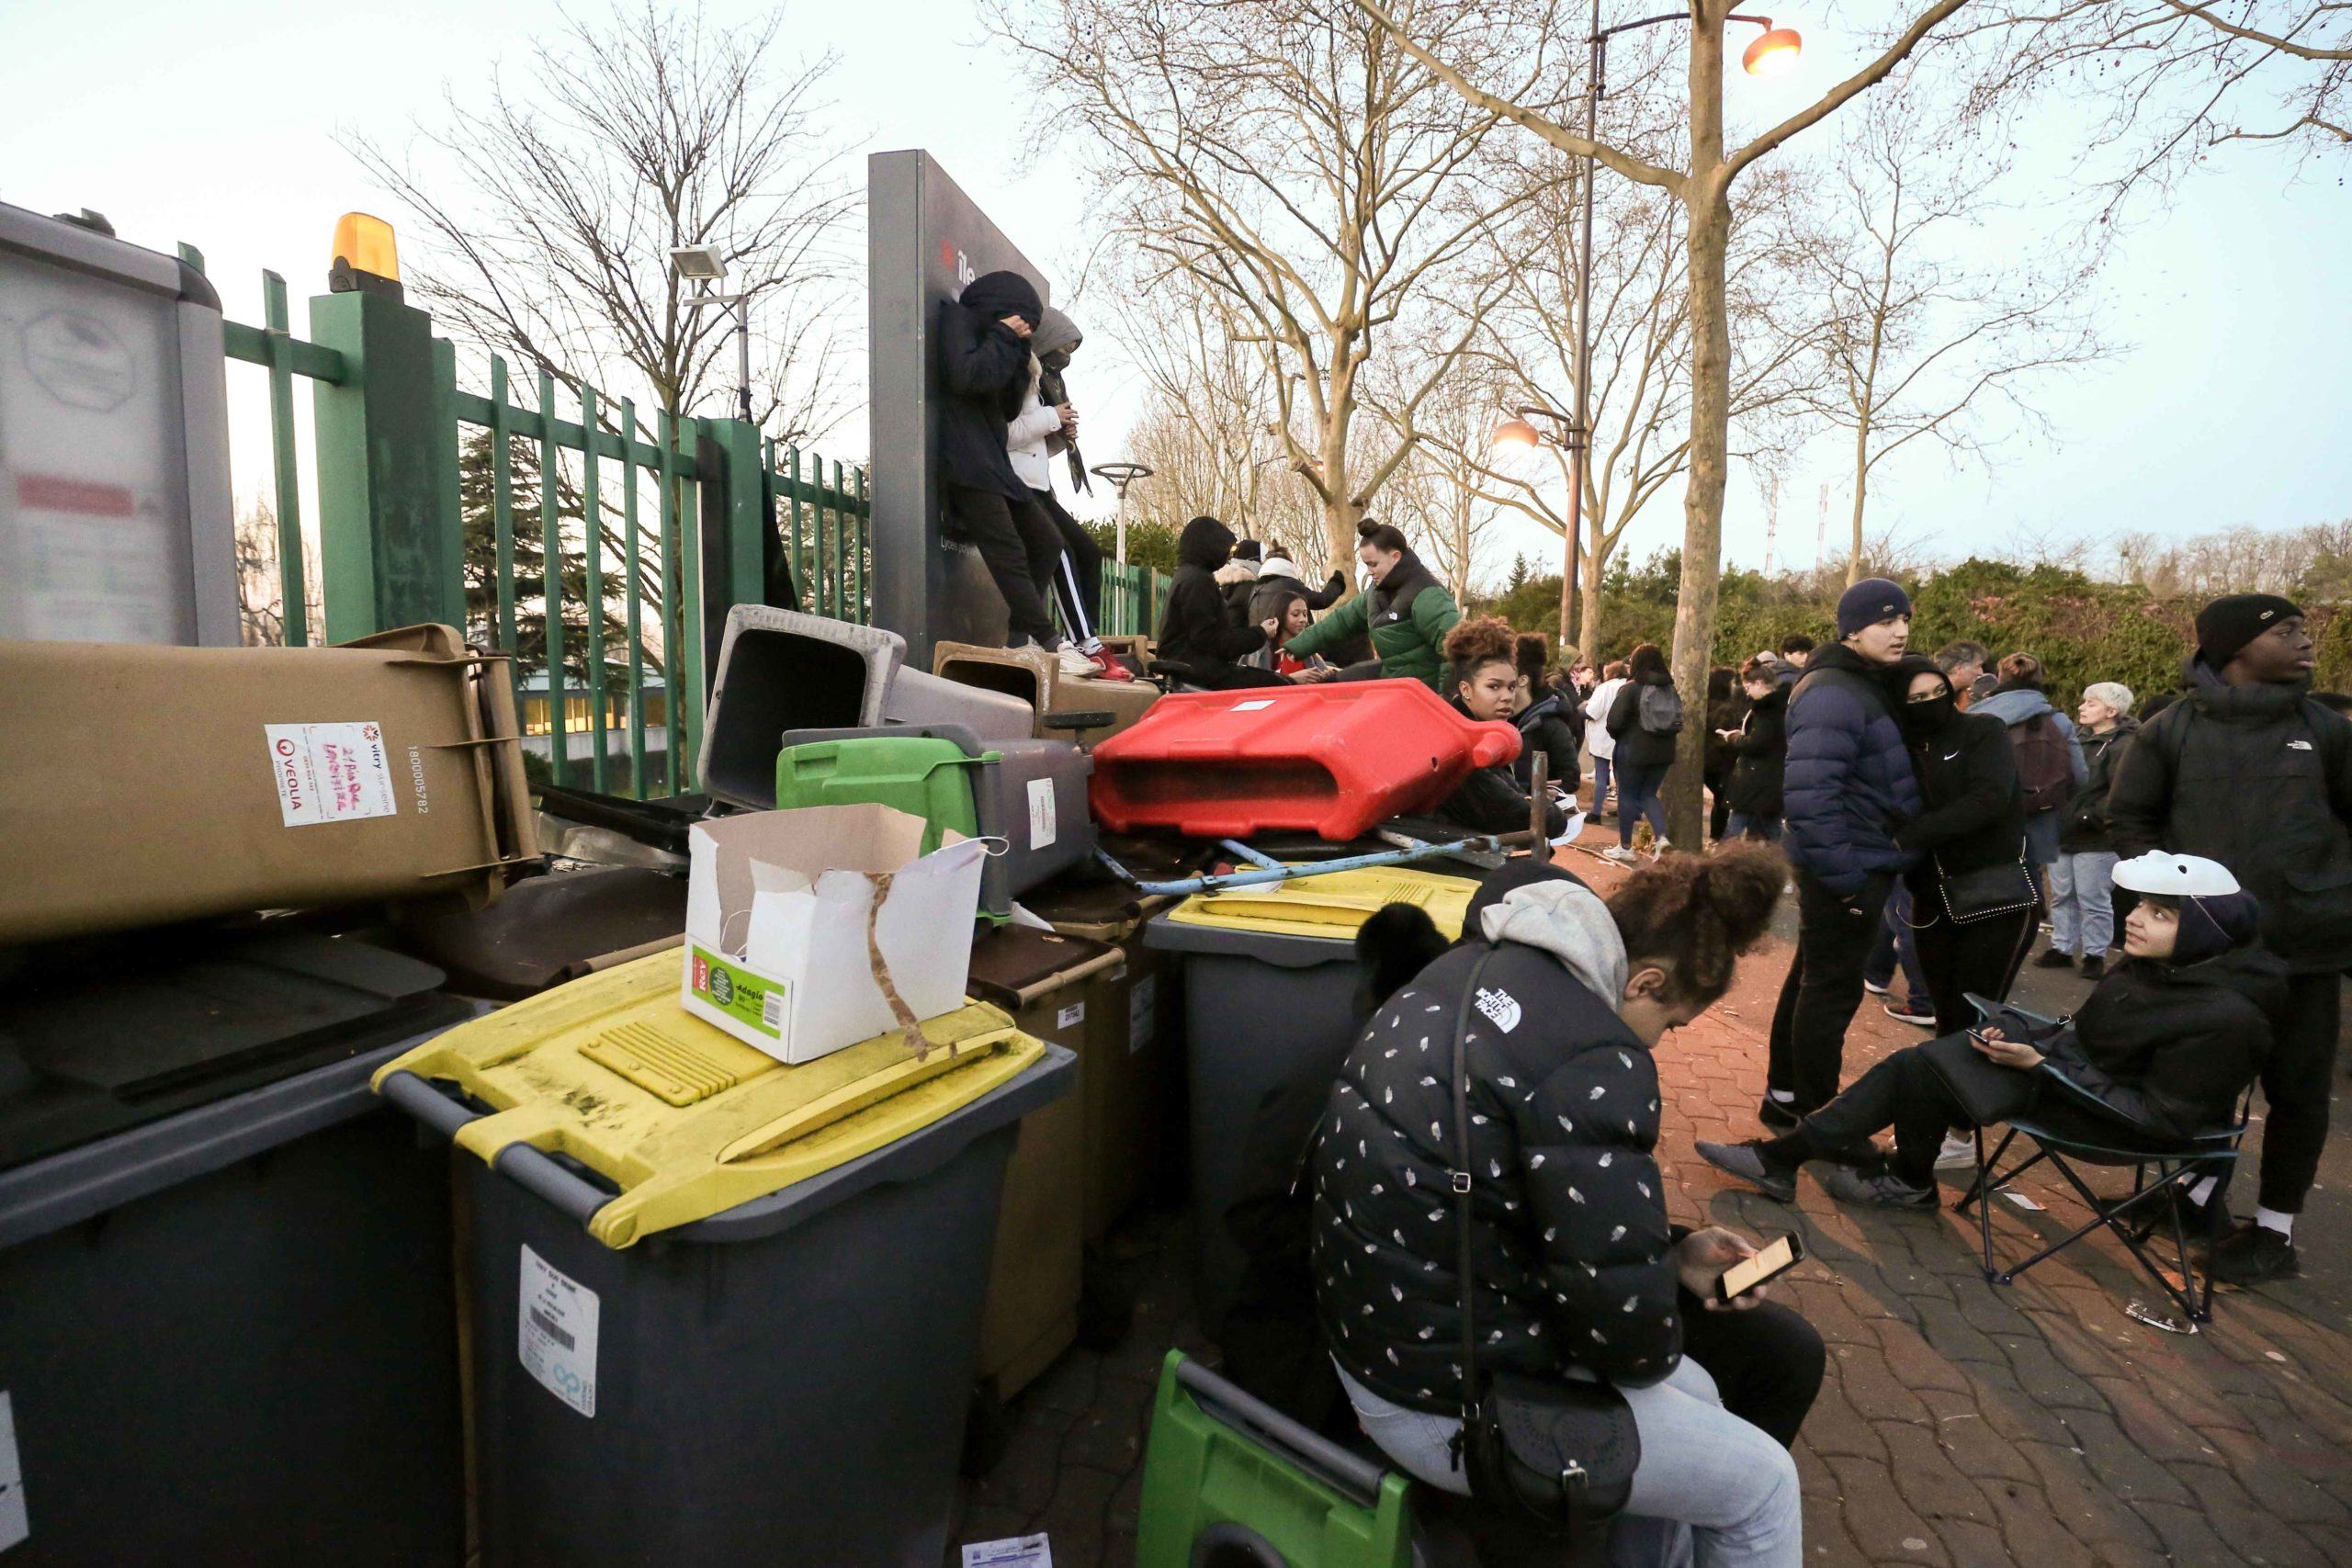 Students opposed to the implementation of the baccalaureate reform (E3C) organize a blockade at the Lycee Romain Rolland in front of their establishment, located in Vitry-sur-Seine, in the southern suburbs of Paris, on 6 February 6, 2020.The demonstration